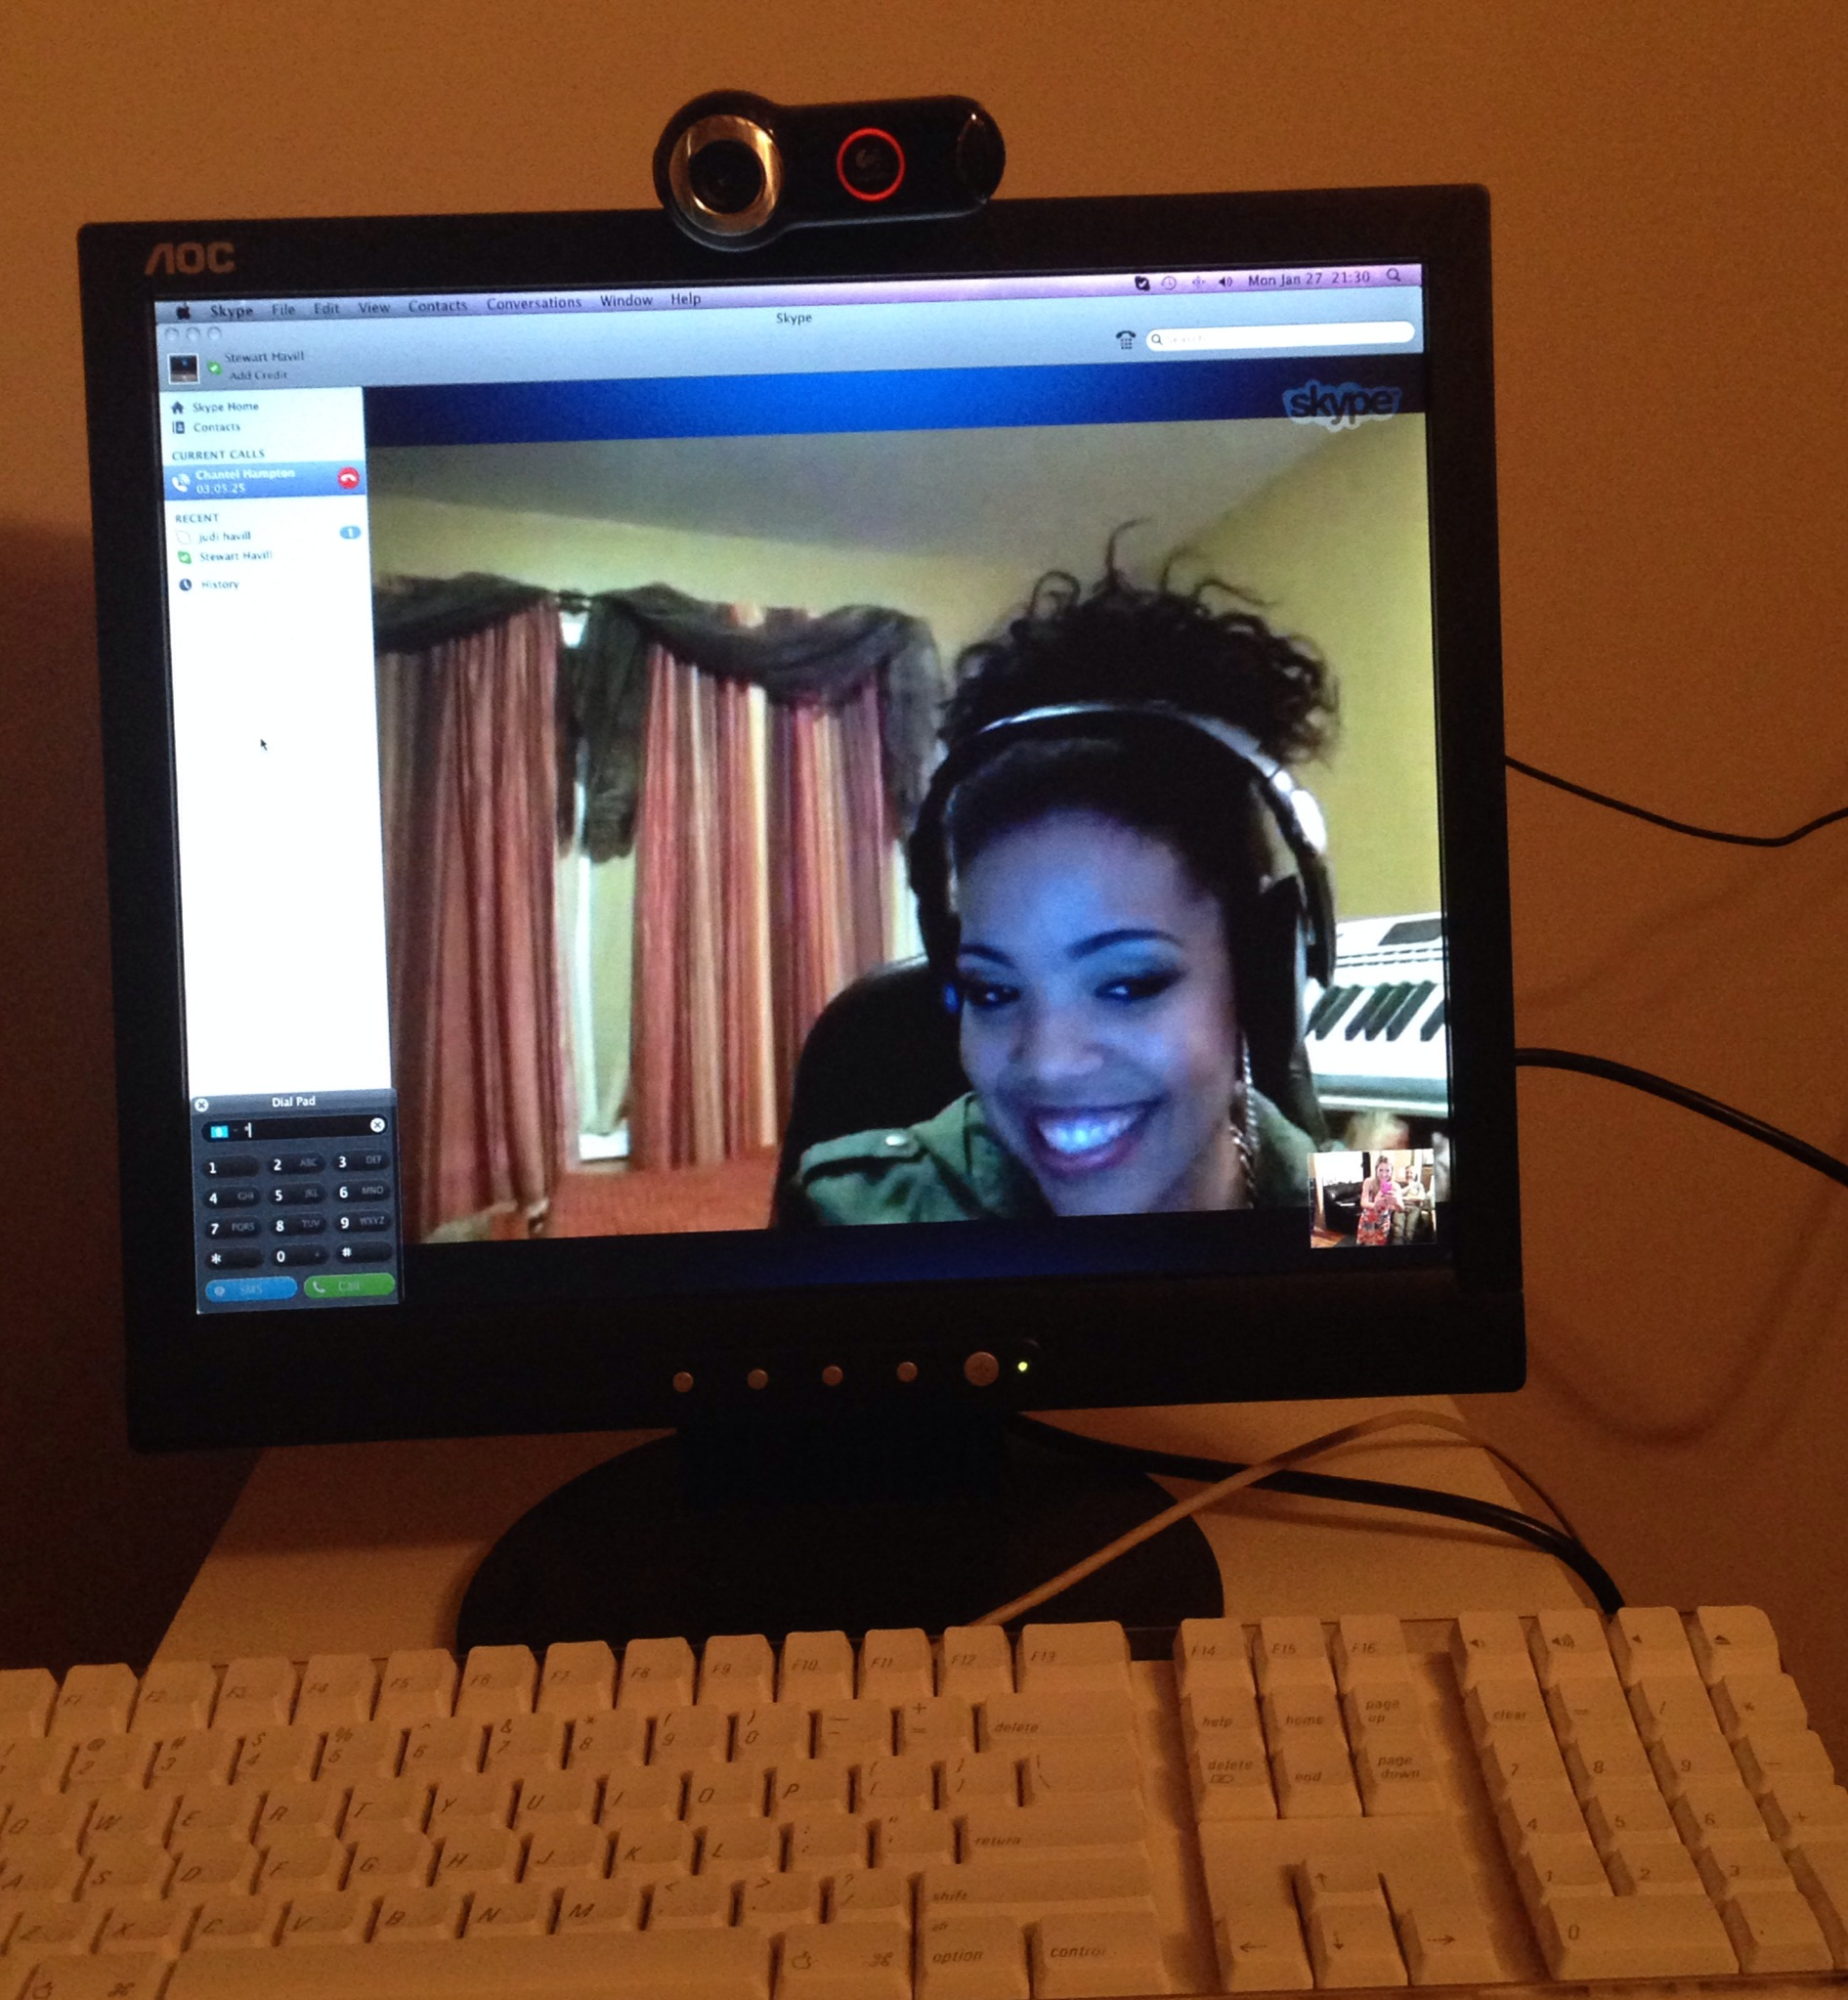 Here is Chantel Hampton from SMD - she drove the entire recording session via Skype from America. She also looks incredible, especially considering she never went to sleep at all. Dealing with international time zones!